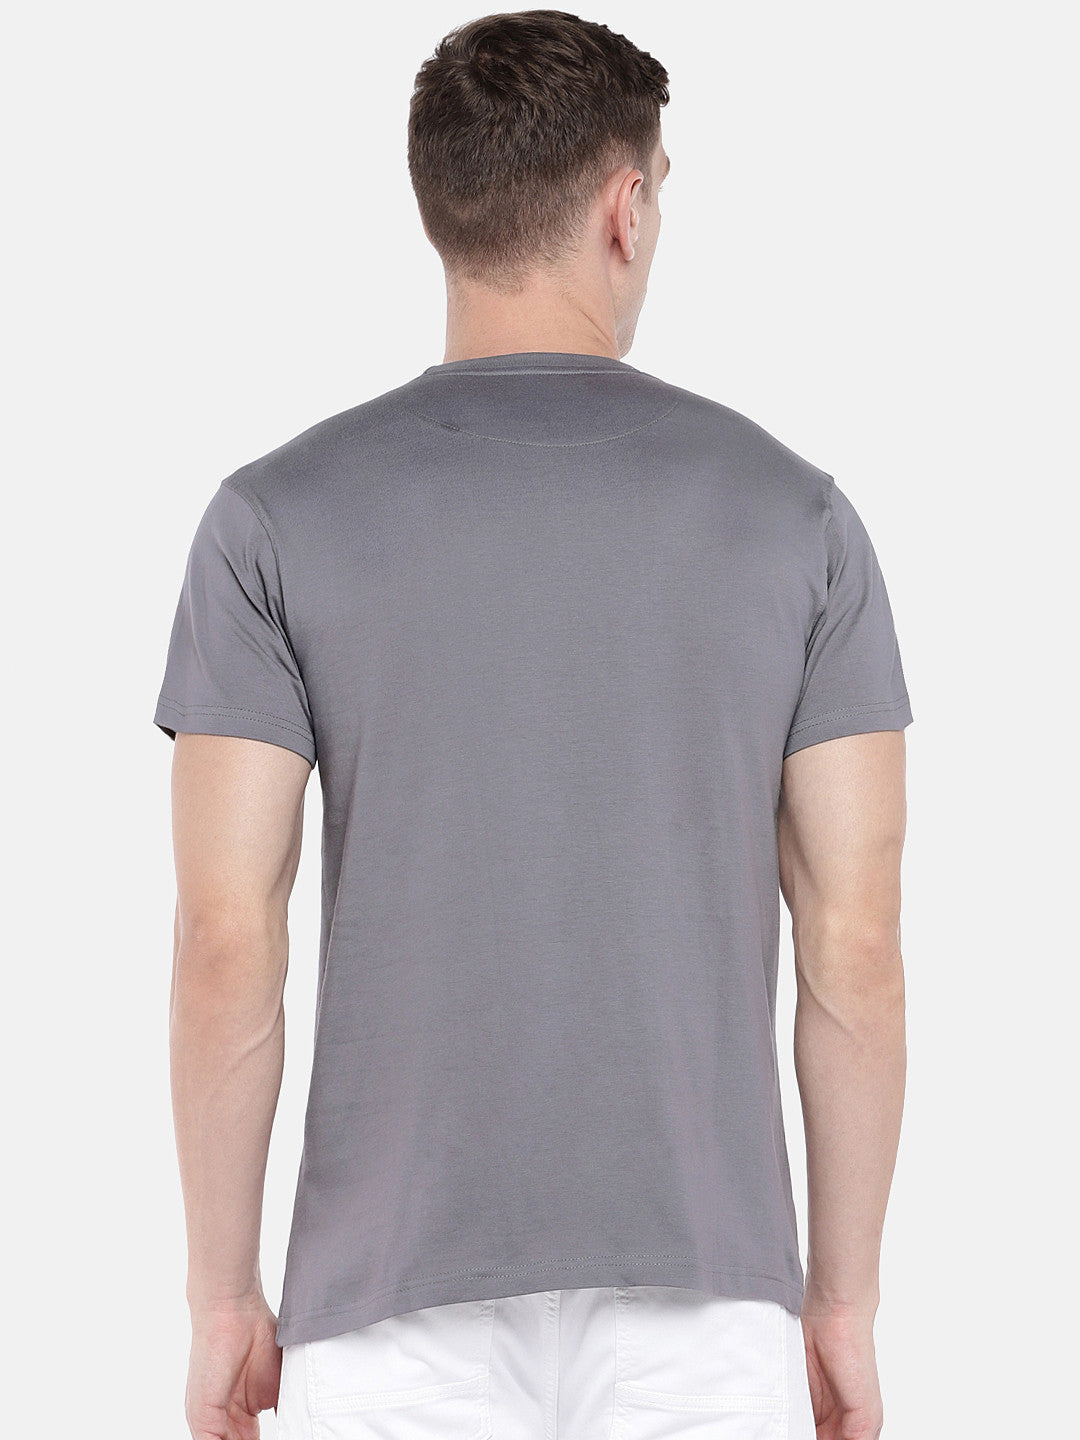 Grey Printed Round Neck T-shirt-3